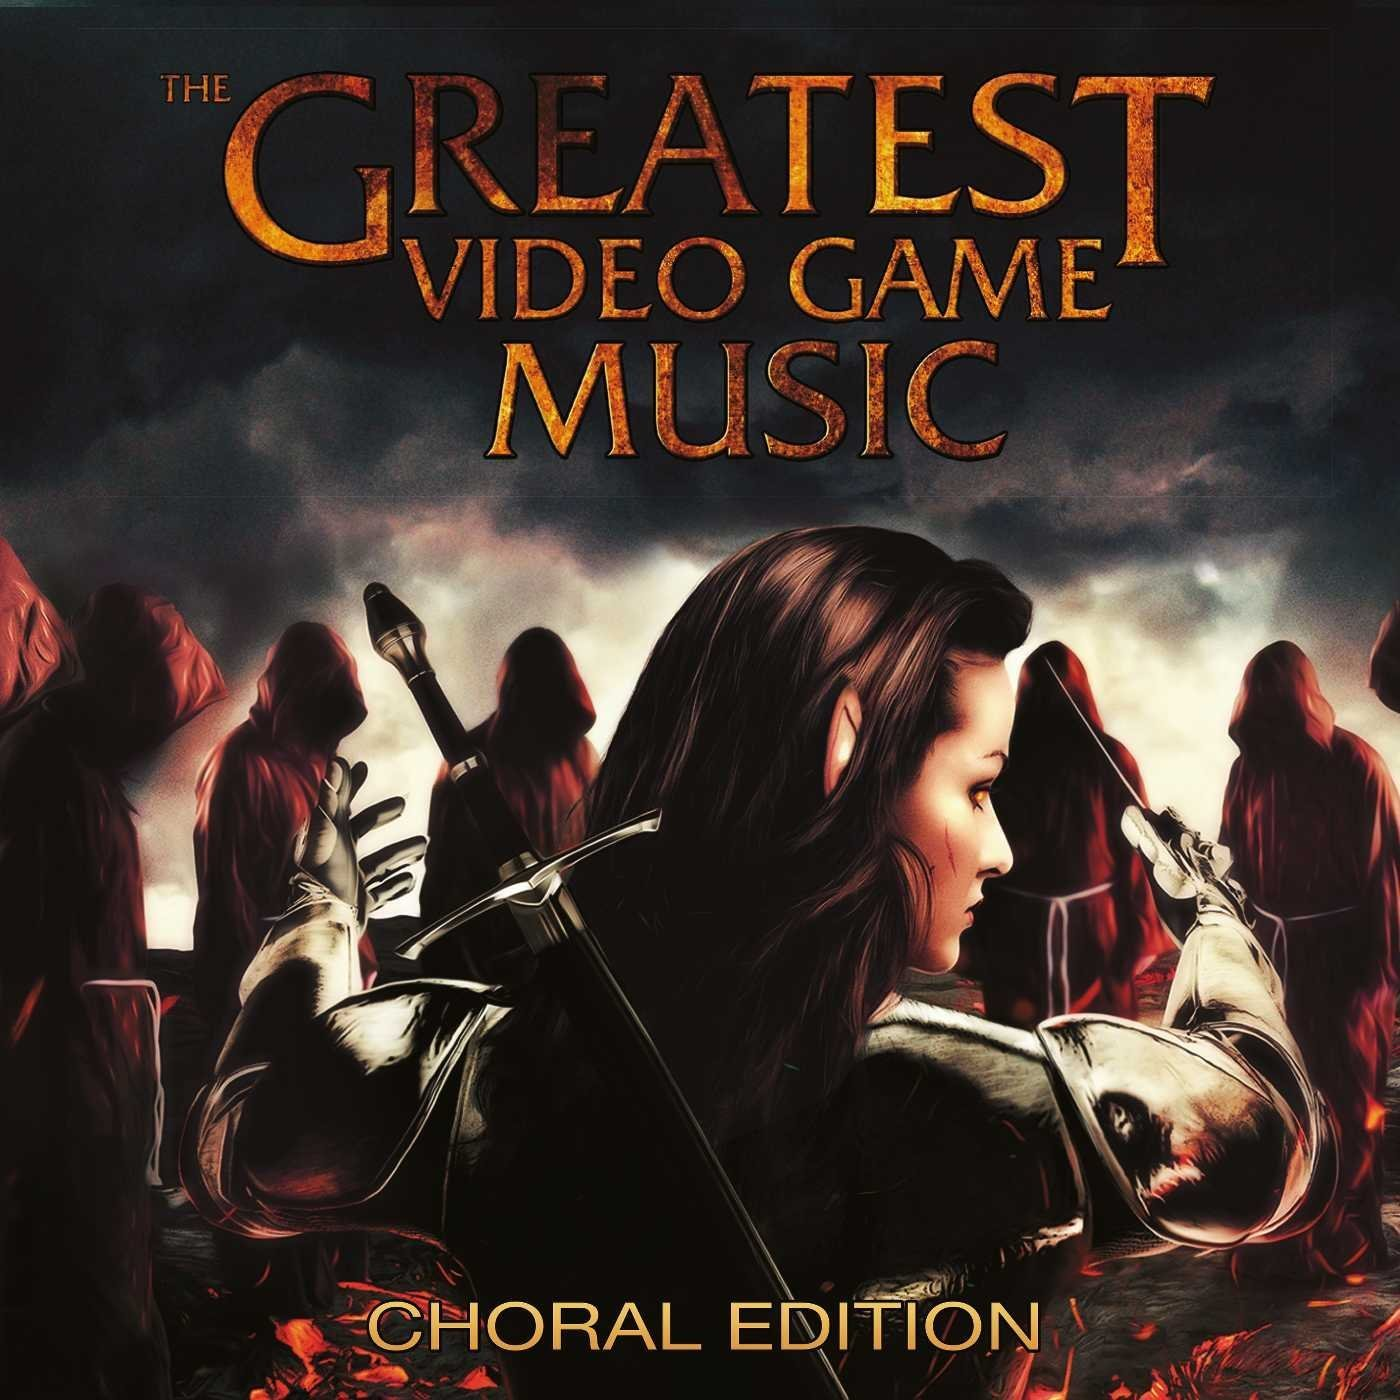 The greatest video game music: las bandas sonoras de los vídeo juegos